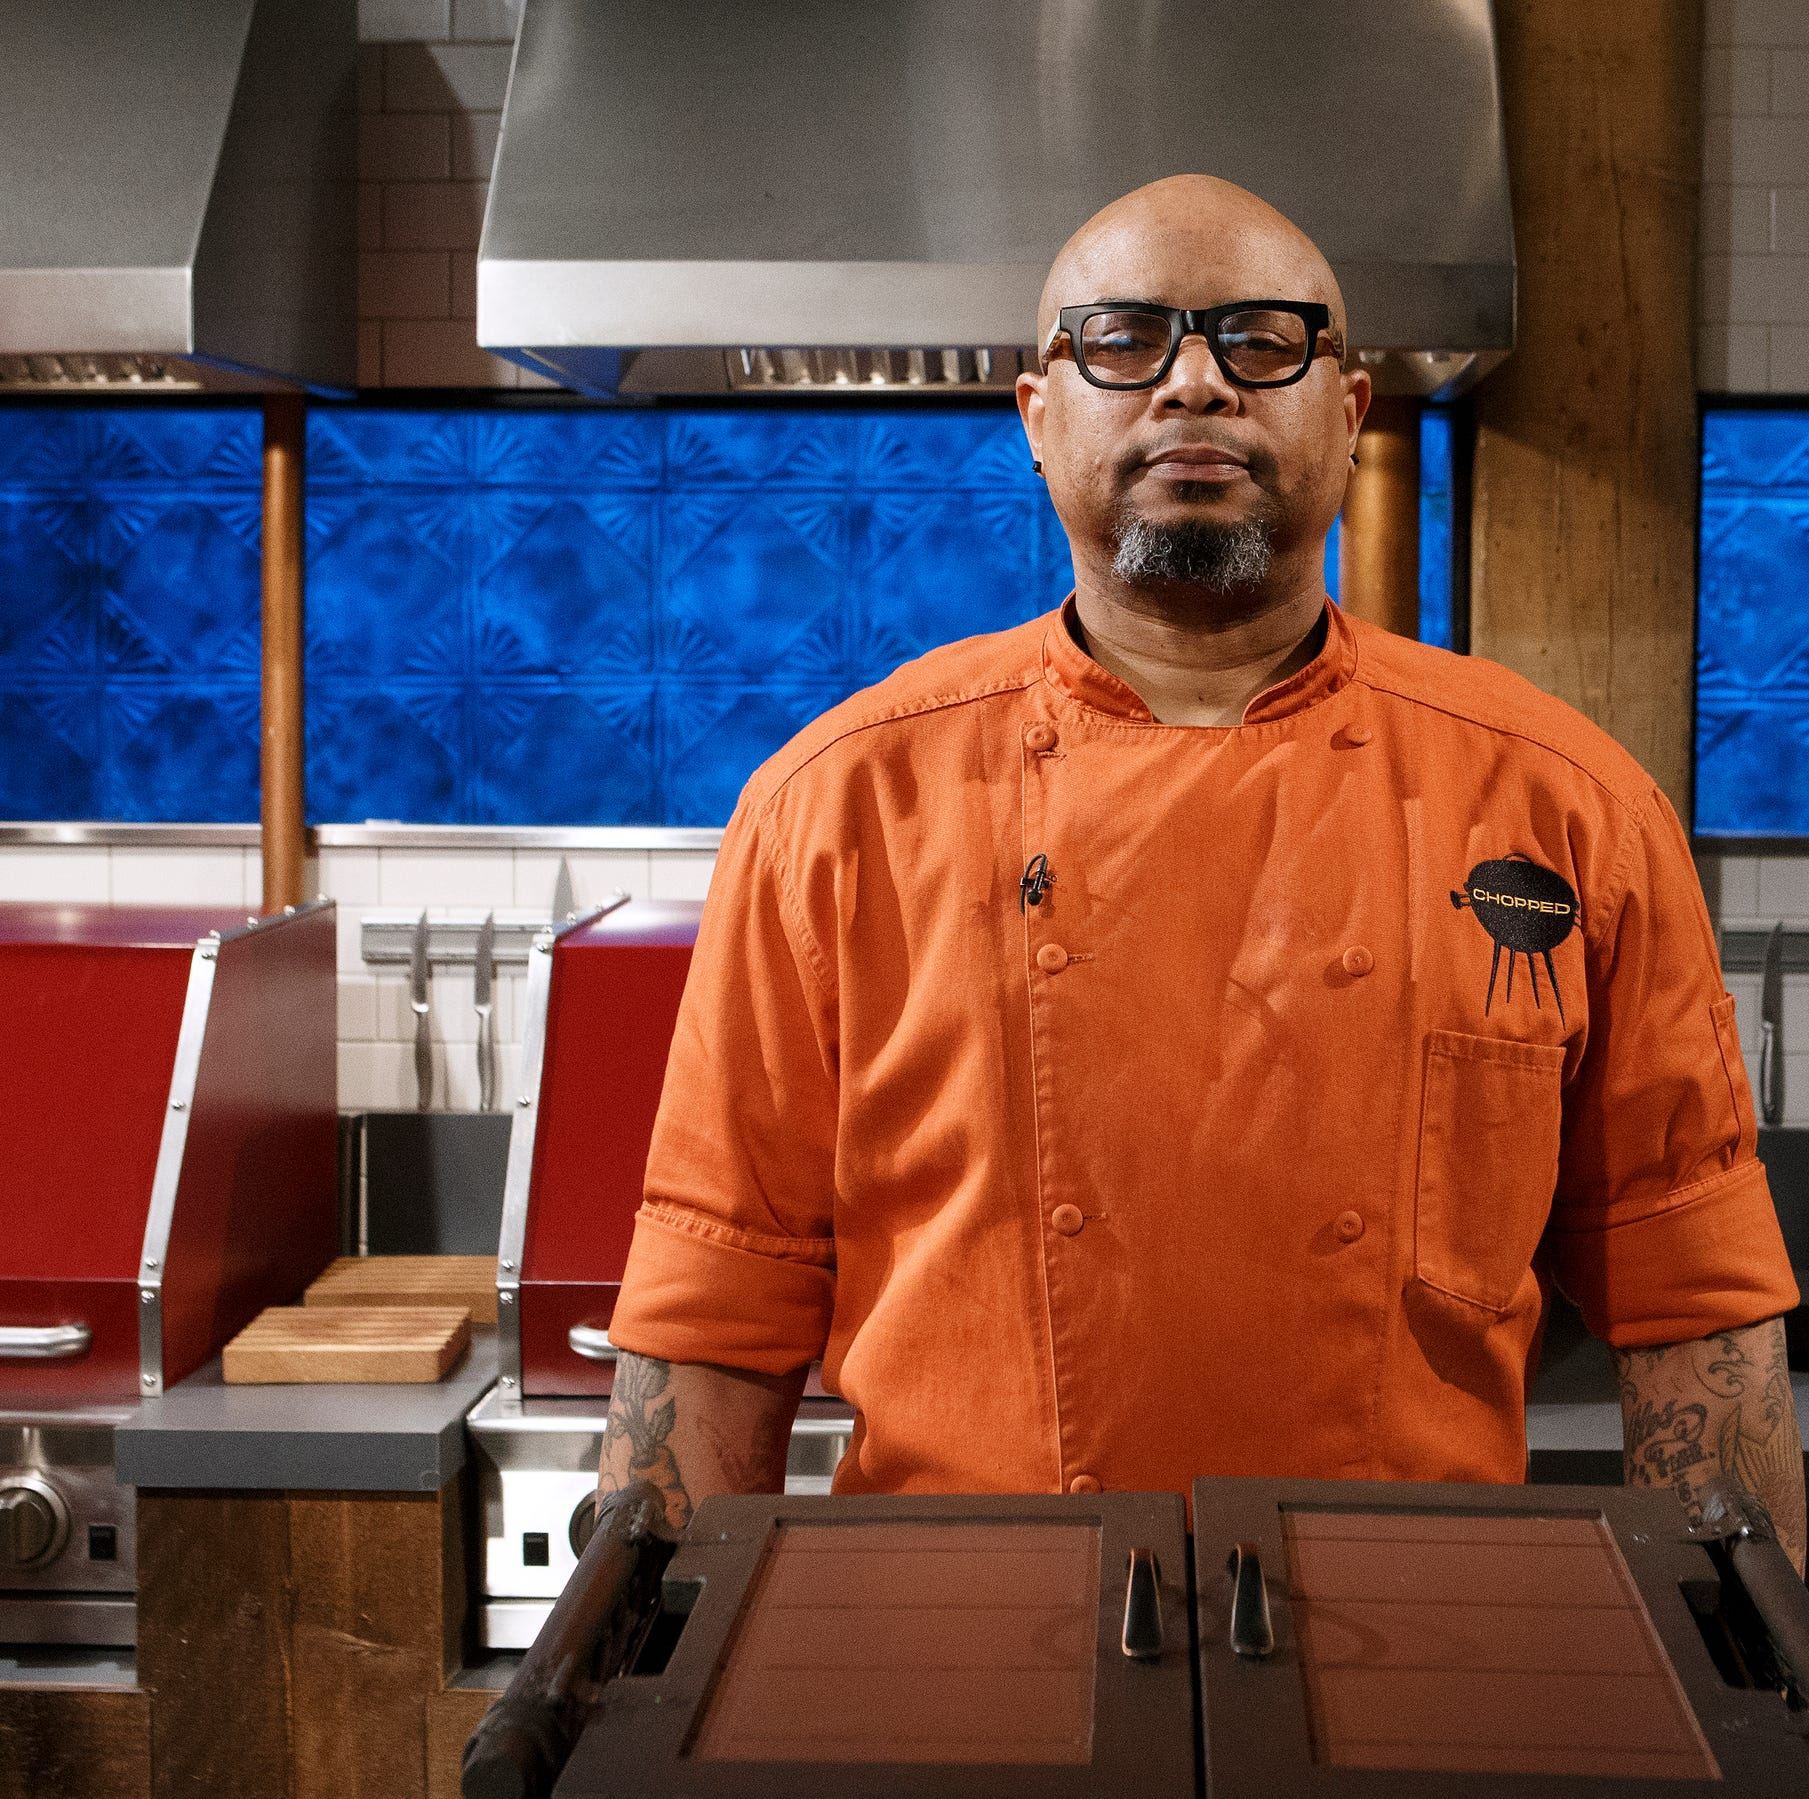 Chopped's top Memphis-style barbecue grill master is from ... Queens?